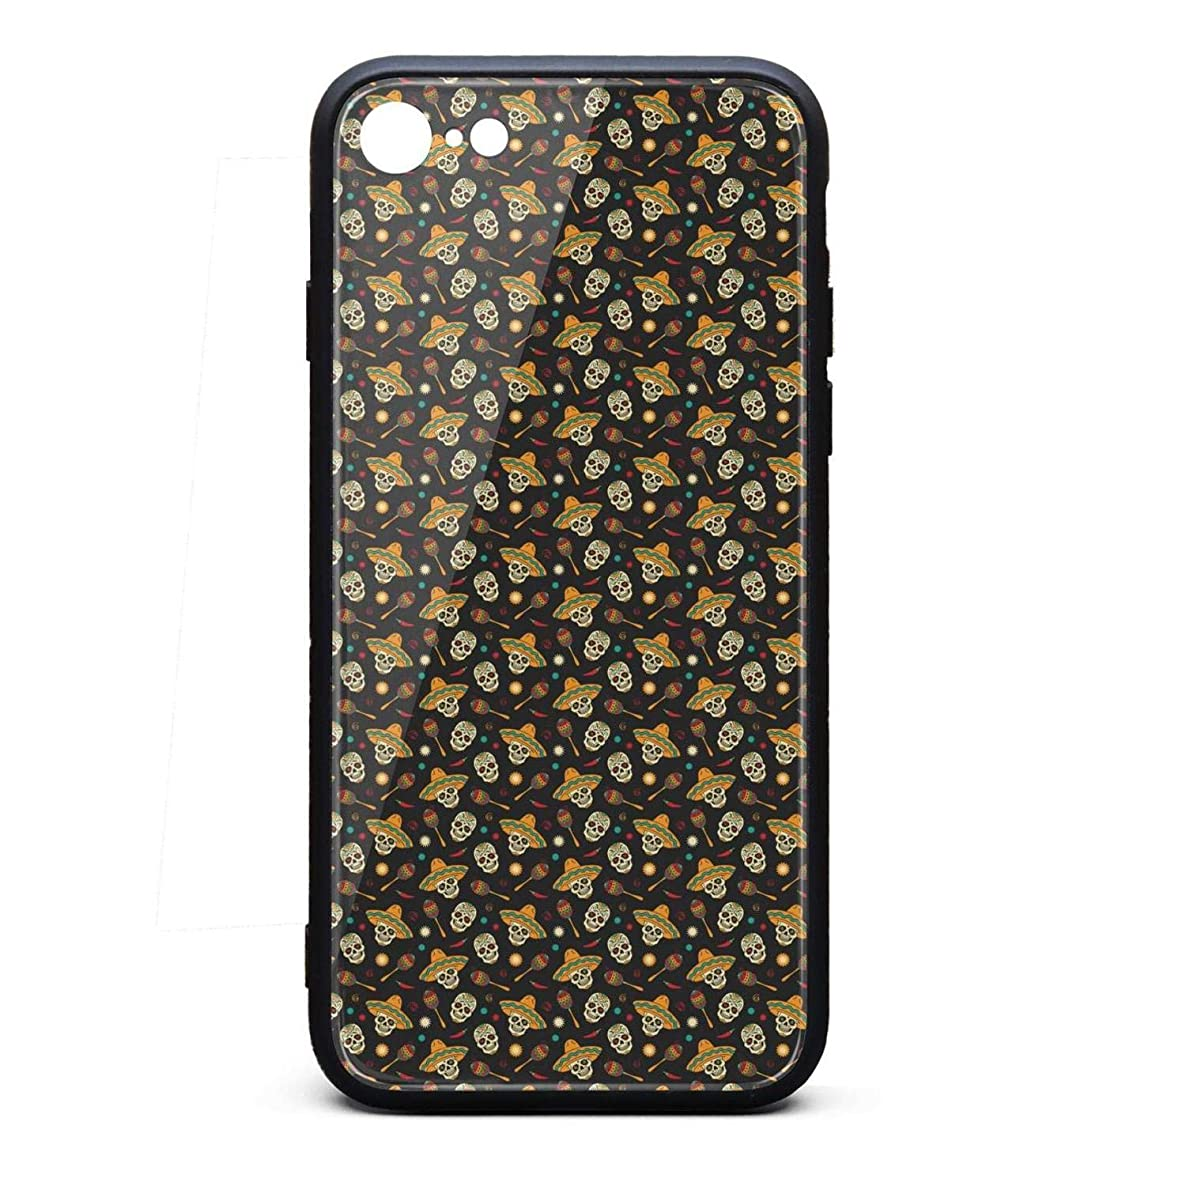 IPhone6 Plus Case/IPhone6S Plus Case Skull Straw hat Chili Love Sugar Printing Anti-Finger Anti-Scratch TPU Heavy Duty Protection Phone Back Cover for iPhone 6 Plus/iPhone 6S Plus